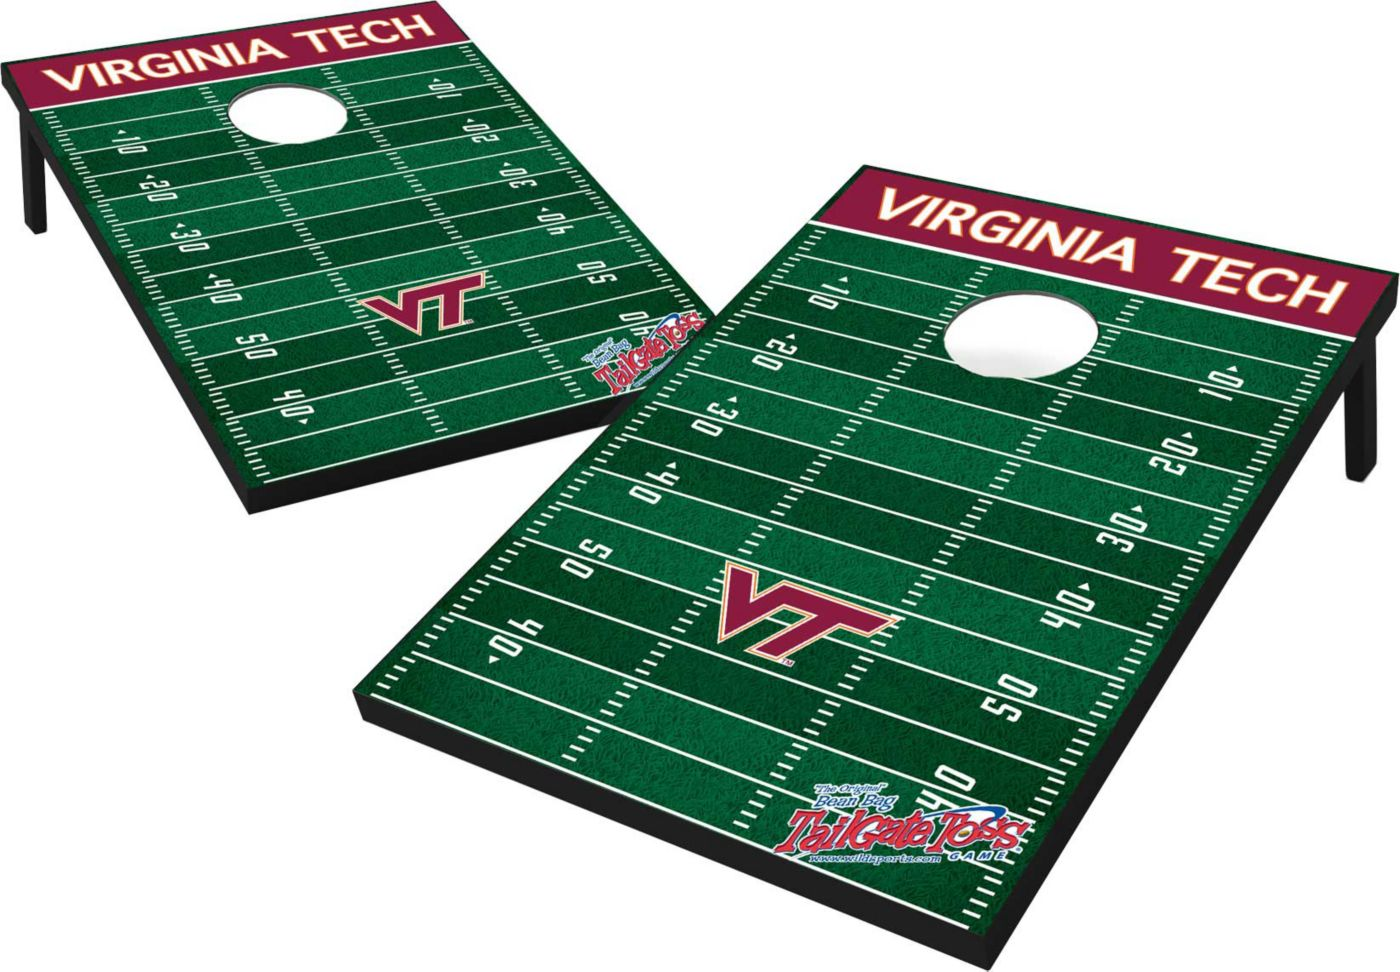 Wild Sports Virginia Tech Tailgate Bean Bag Toss